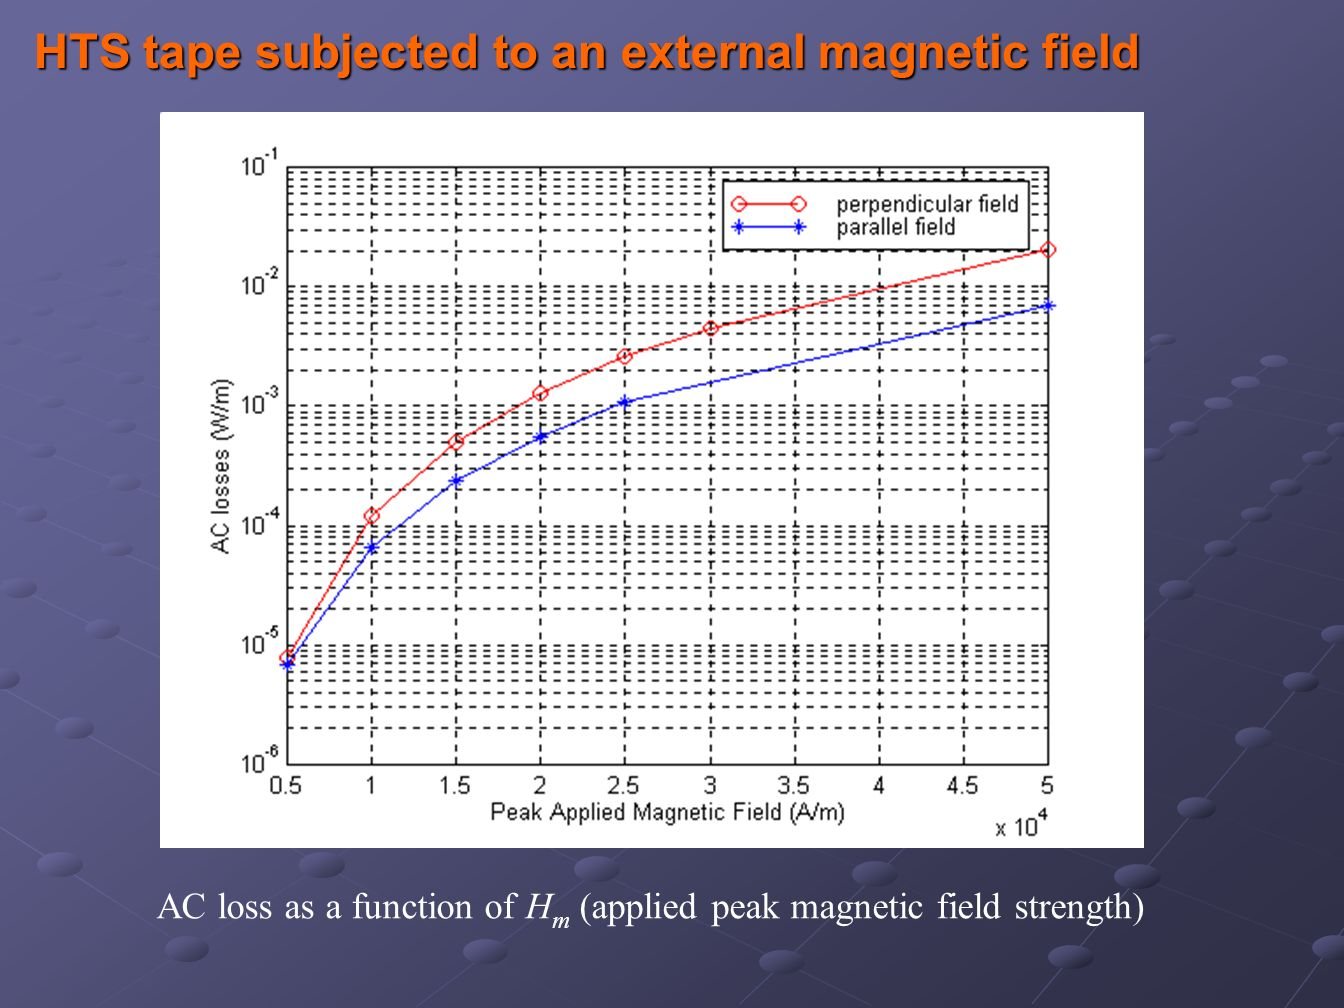 AC loss as a function of H m (applied peak magnetic field strength)